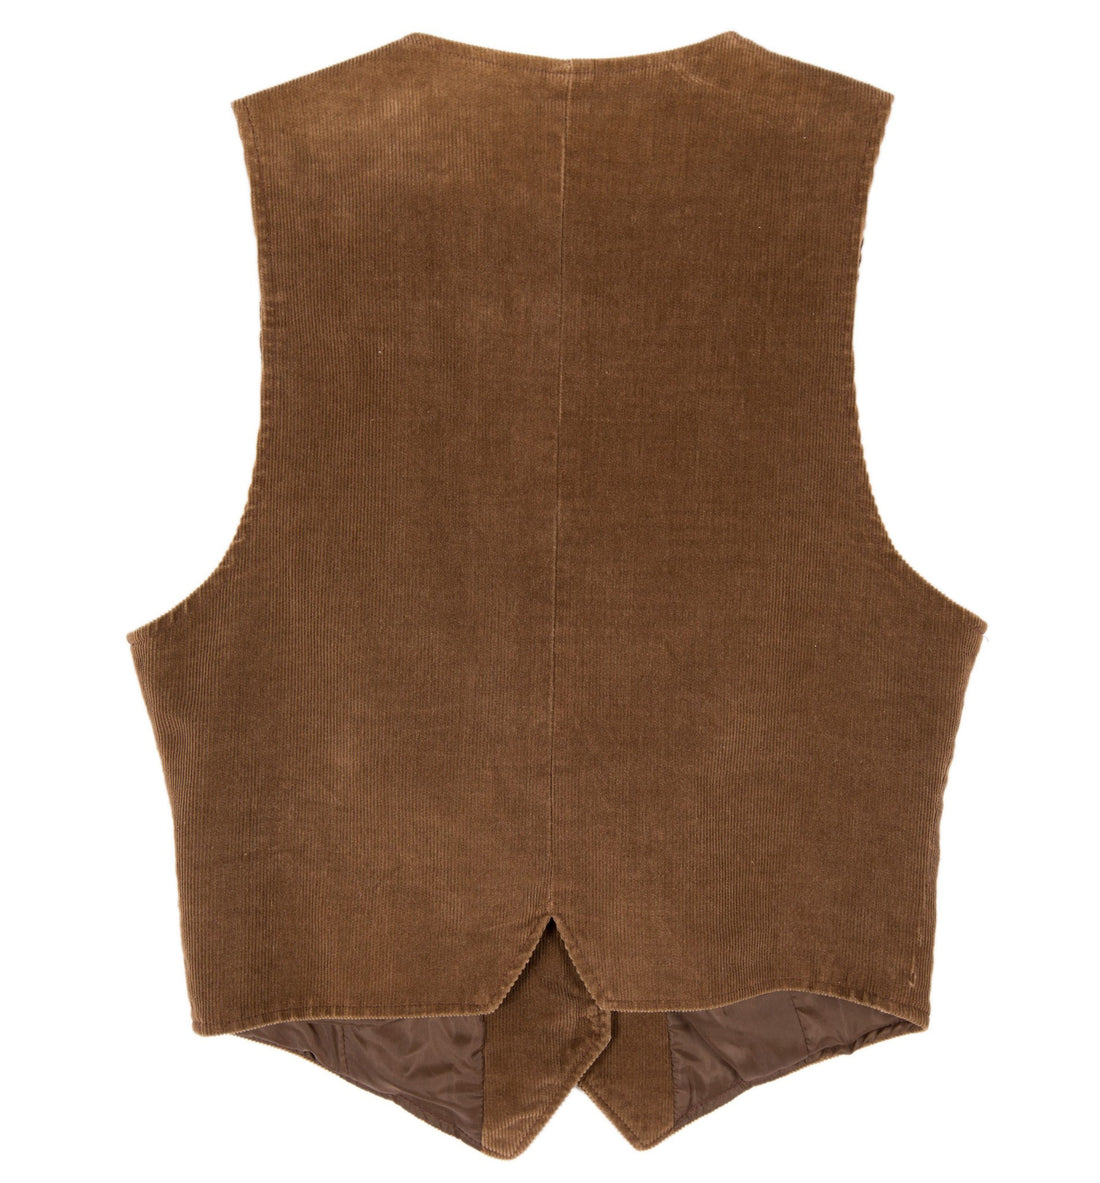 Vintage Corduroy Vest - Vintage - Iron and Resin